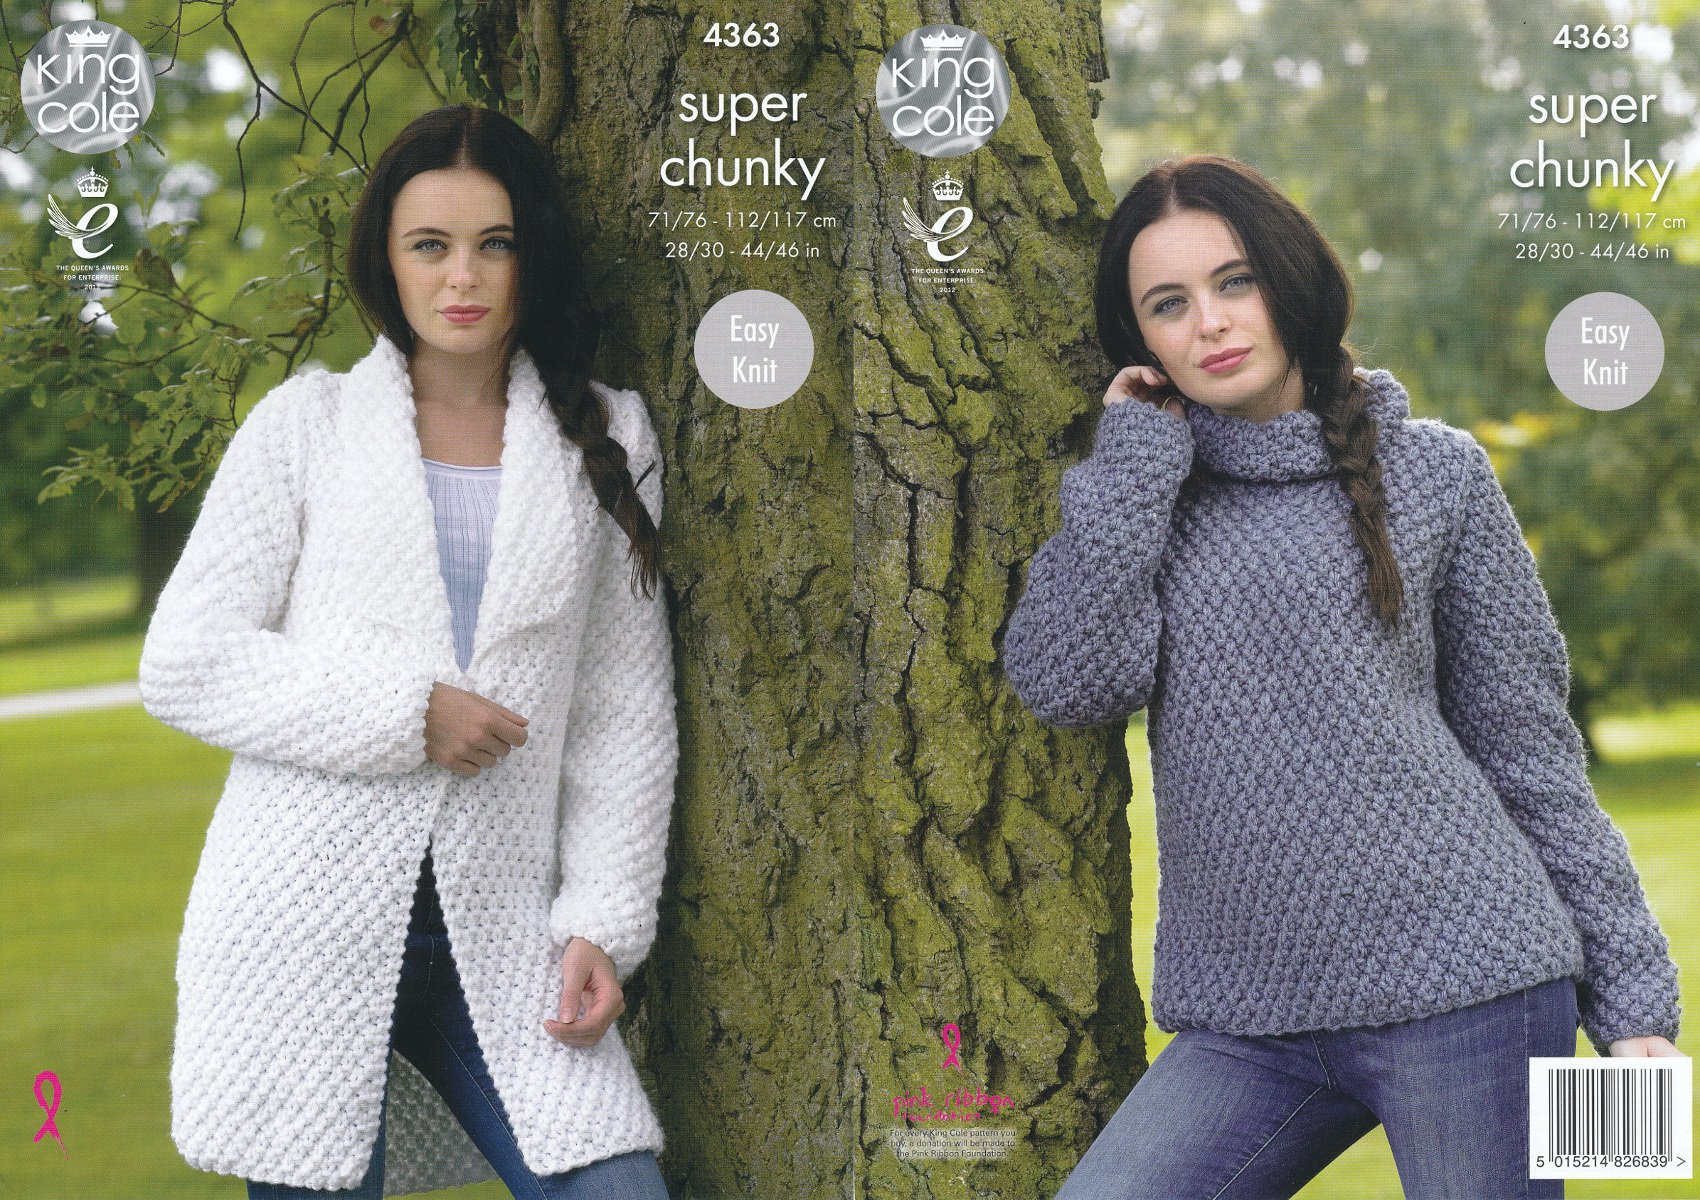 King Cole Ladies Chunky Knitting Pattern Womens Cable Knit Jacket Cardigan 4858